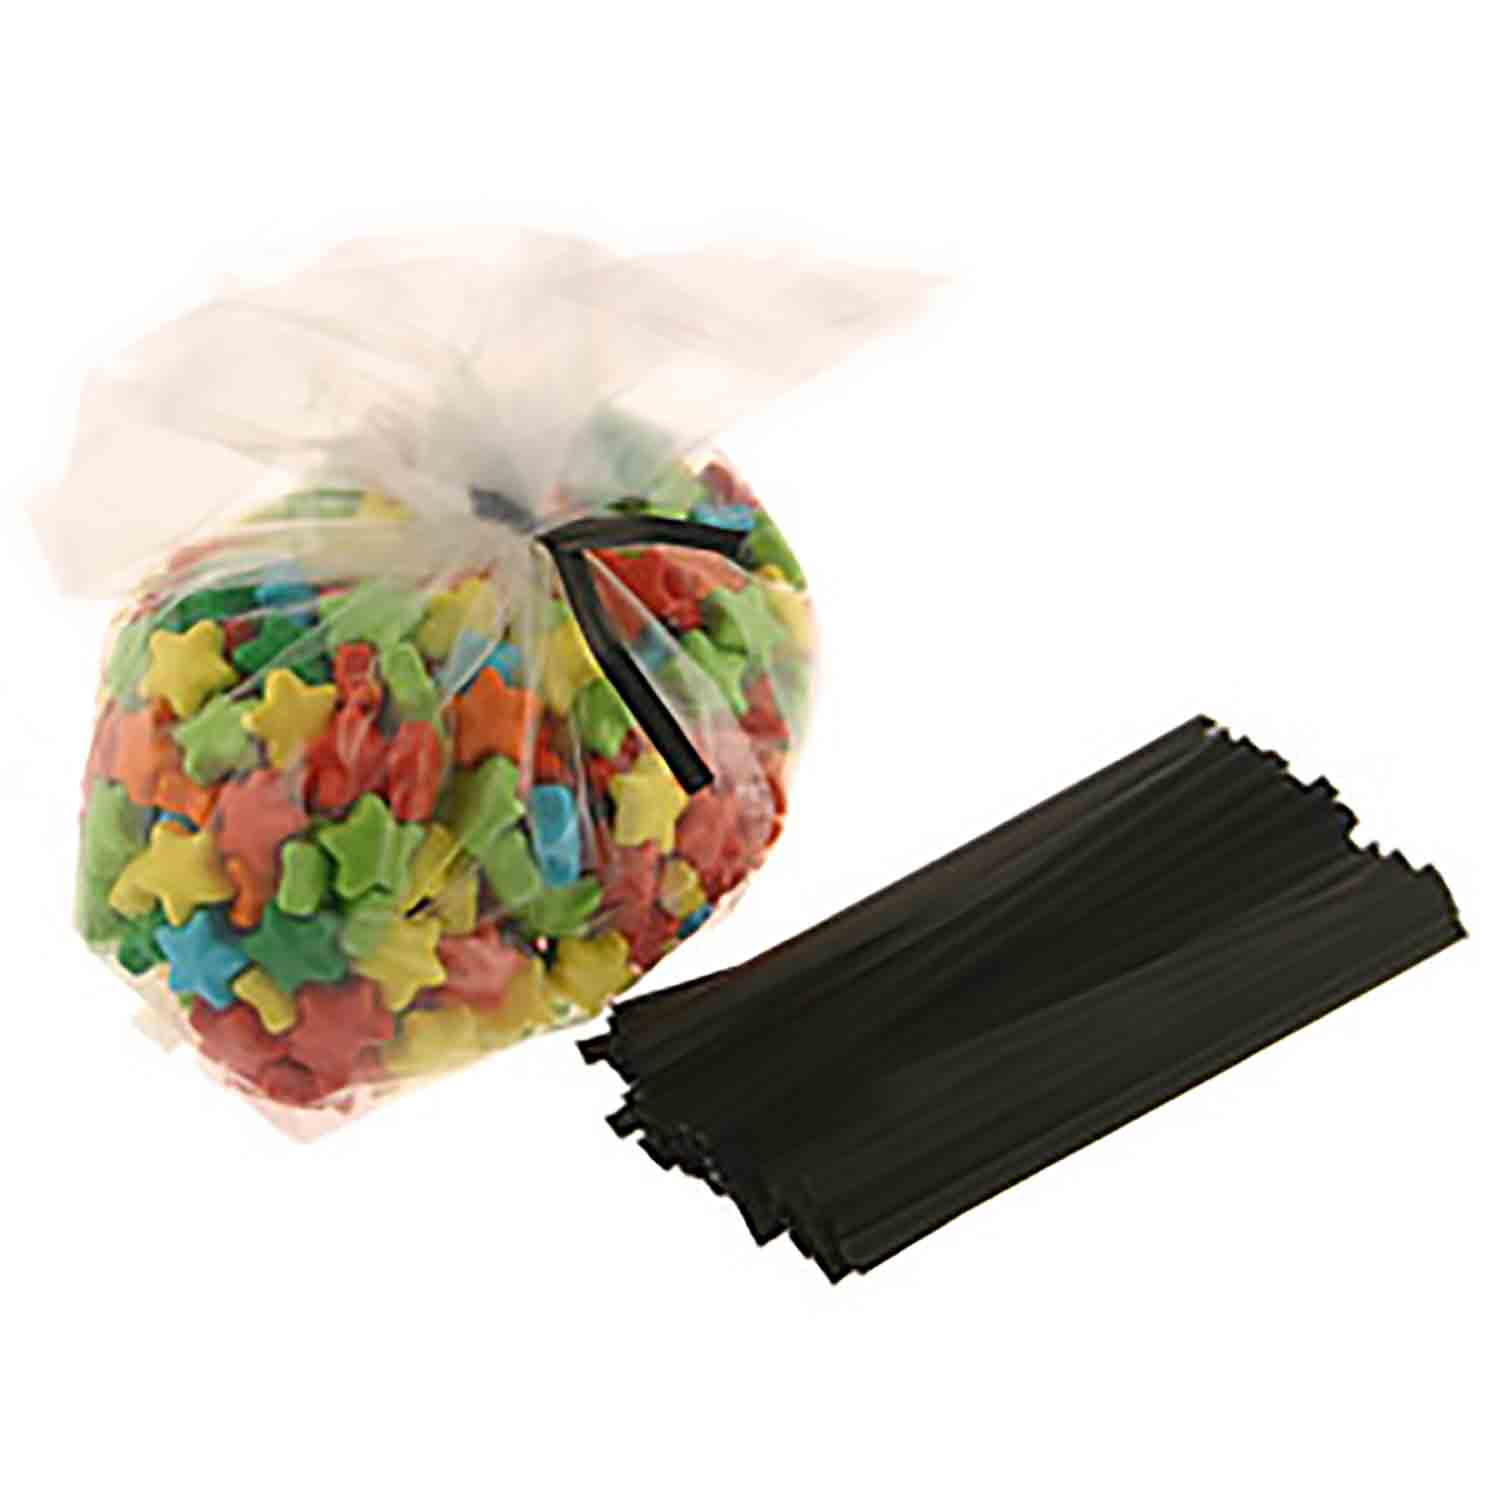 Twisties - Black Twist Ties